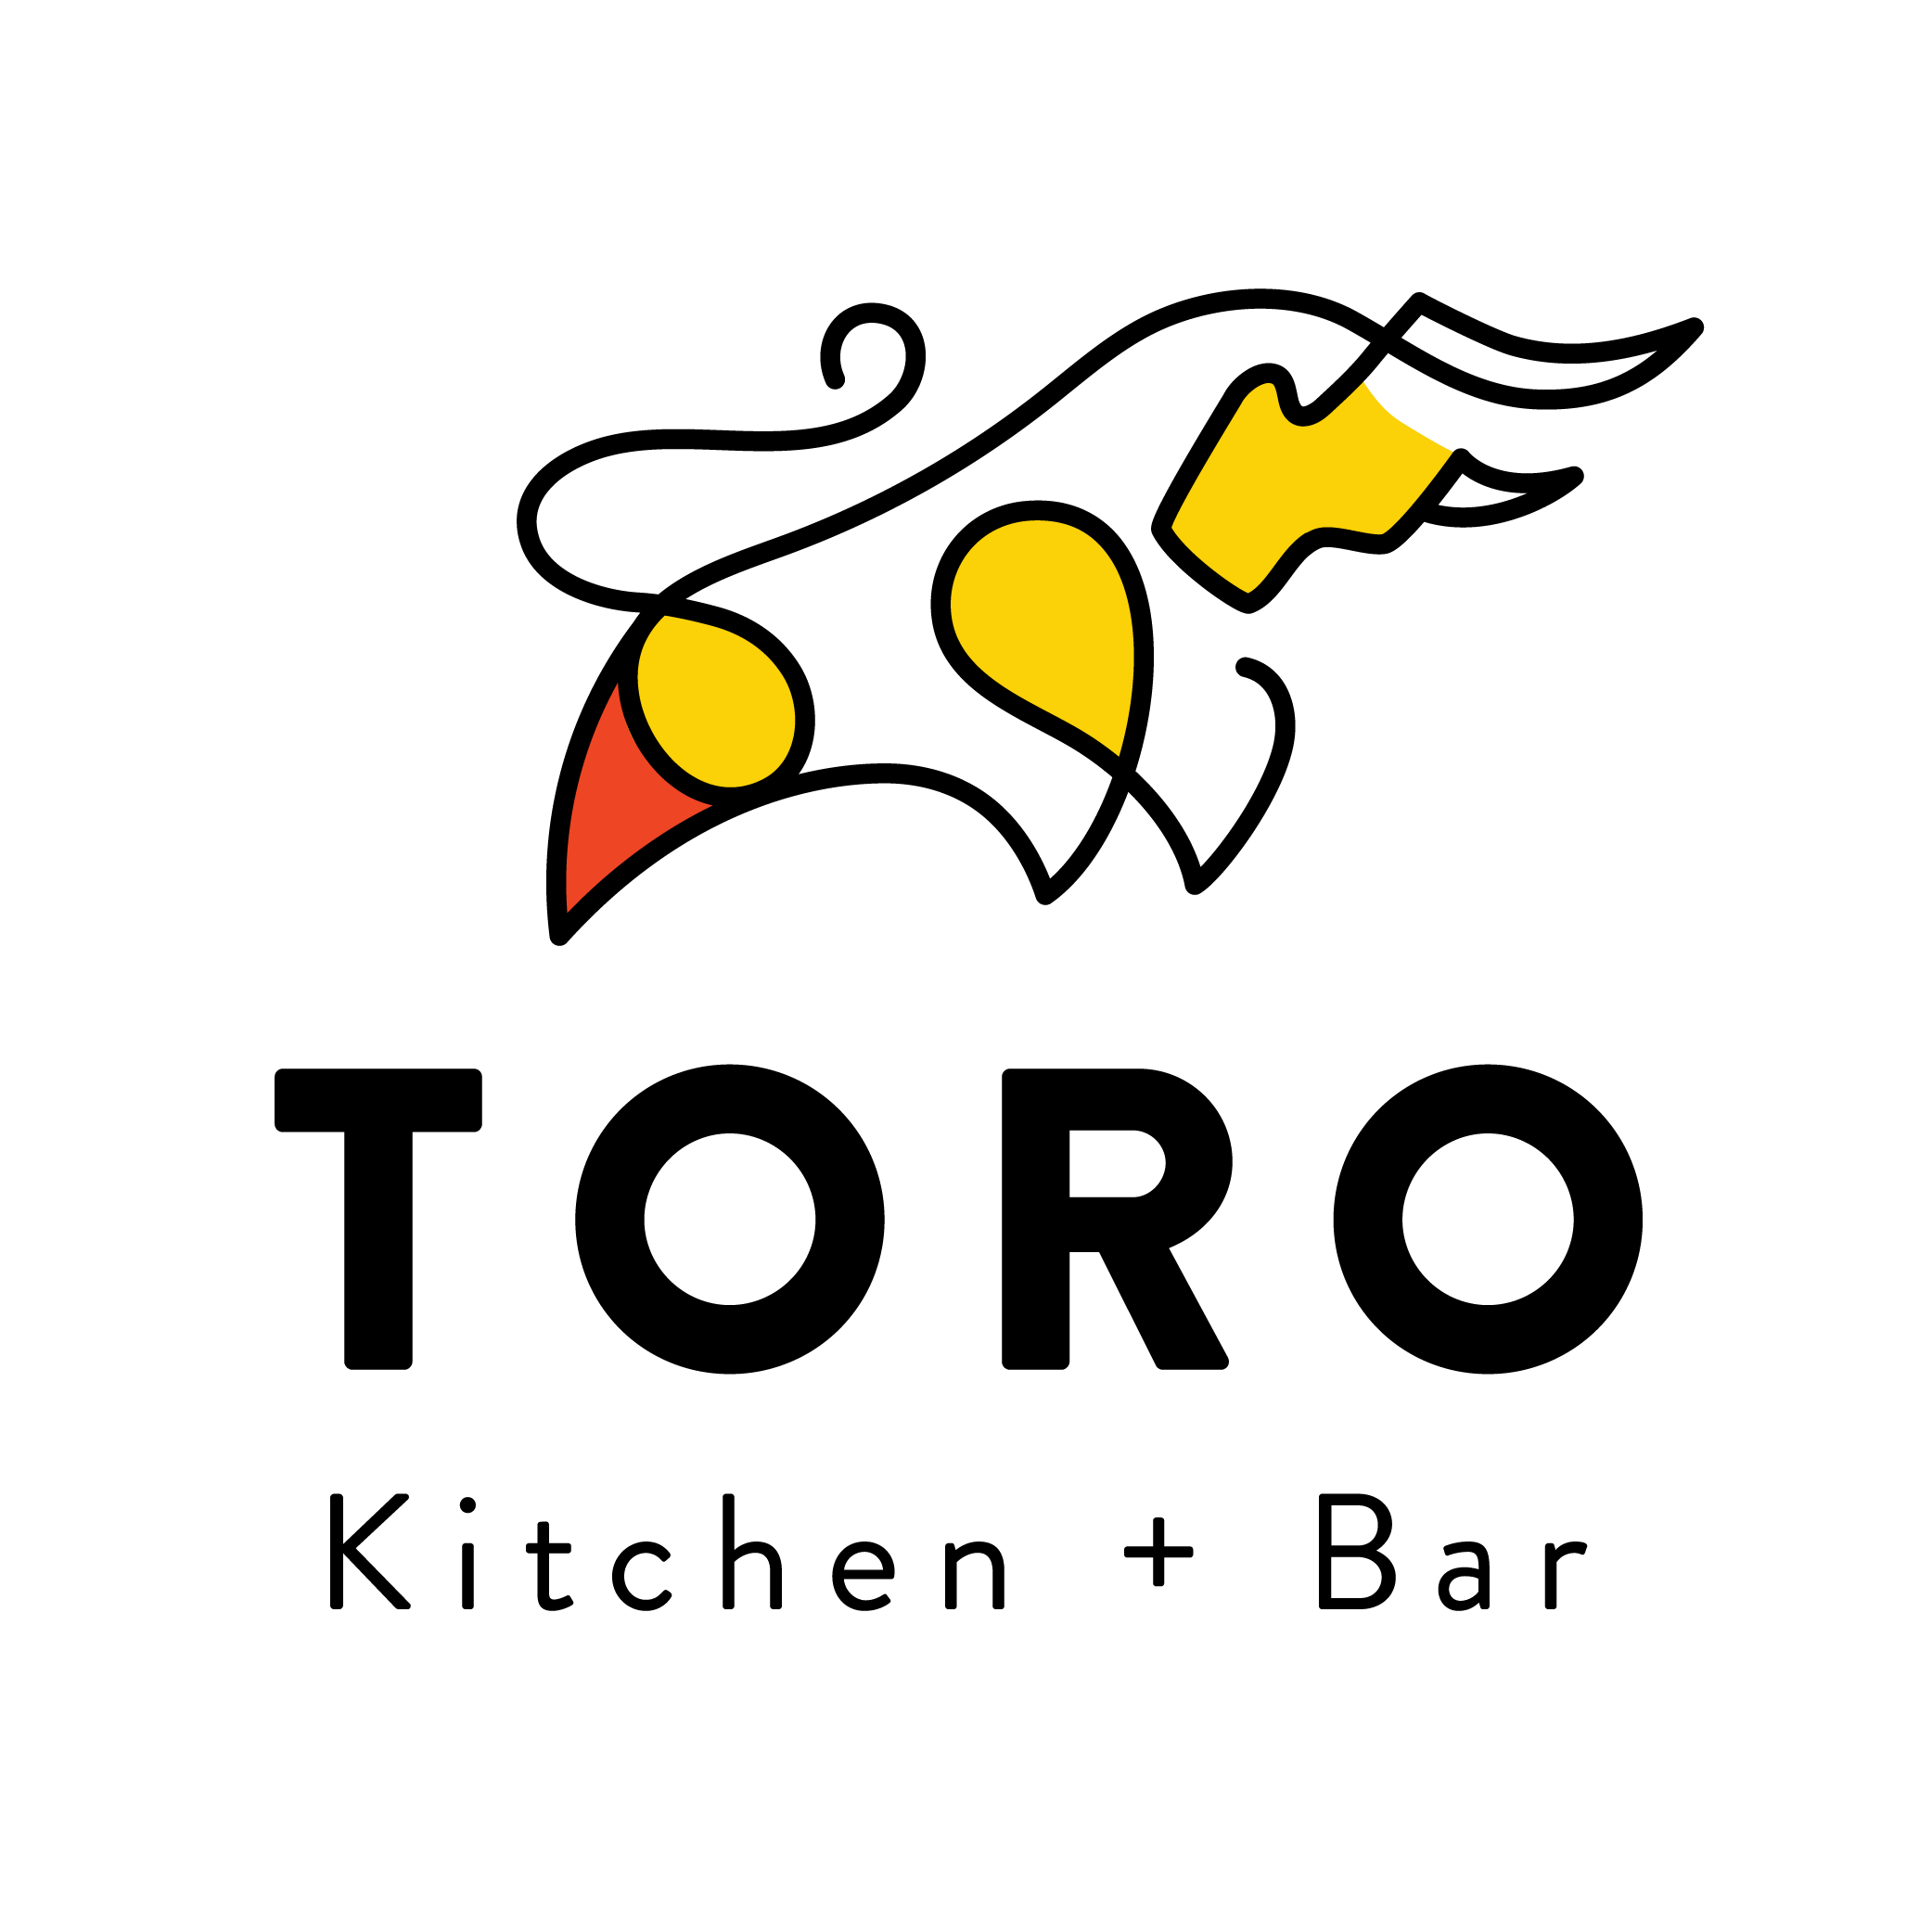 Logo-Toro-Color-xSpace (1).png